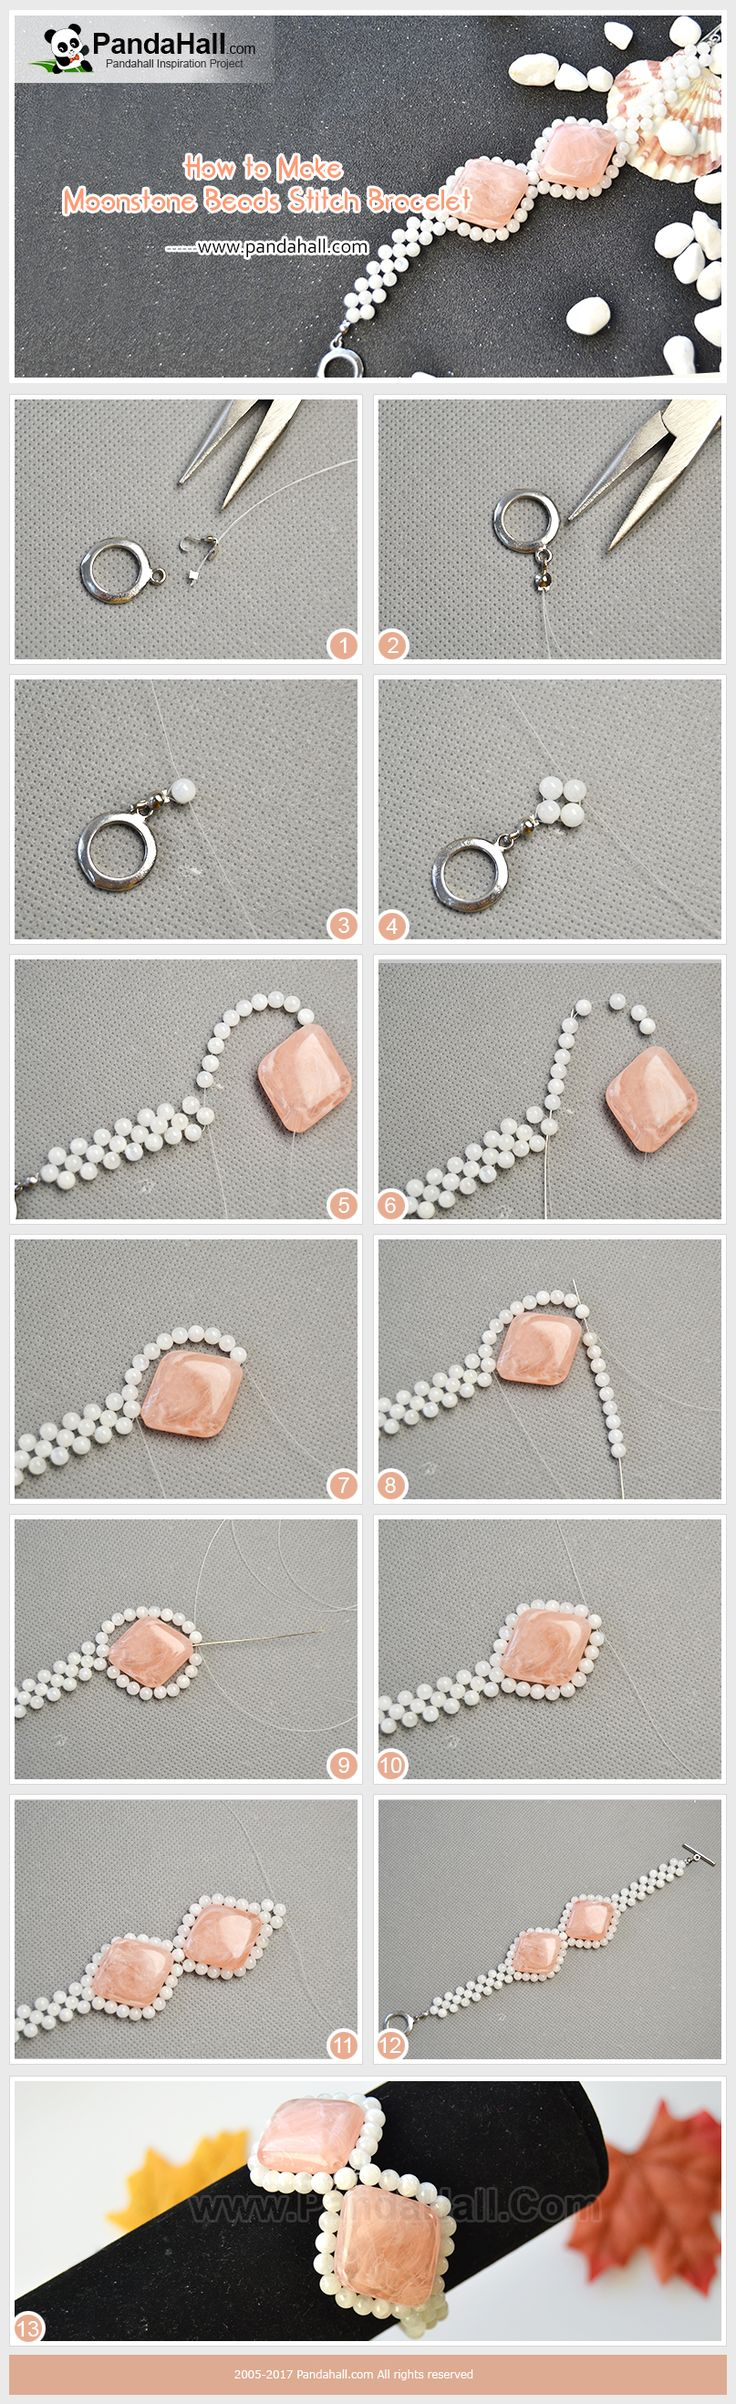 Pic ONLY How to Make Moonstone Beads Stitch Bracelet